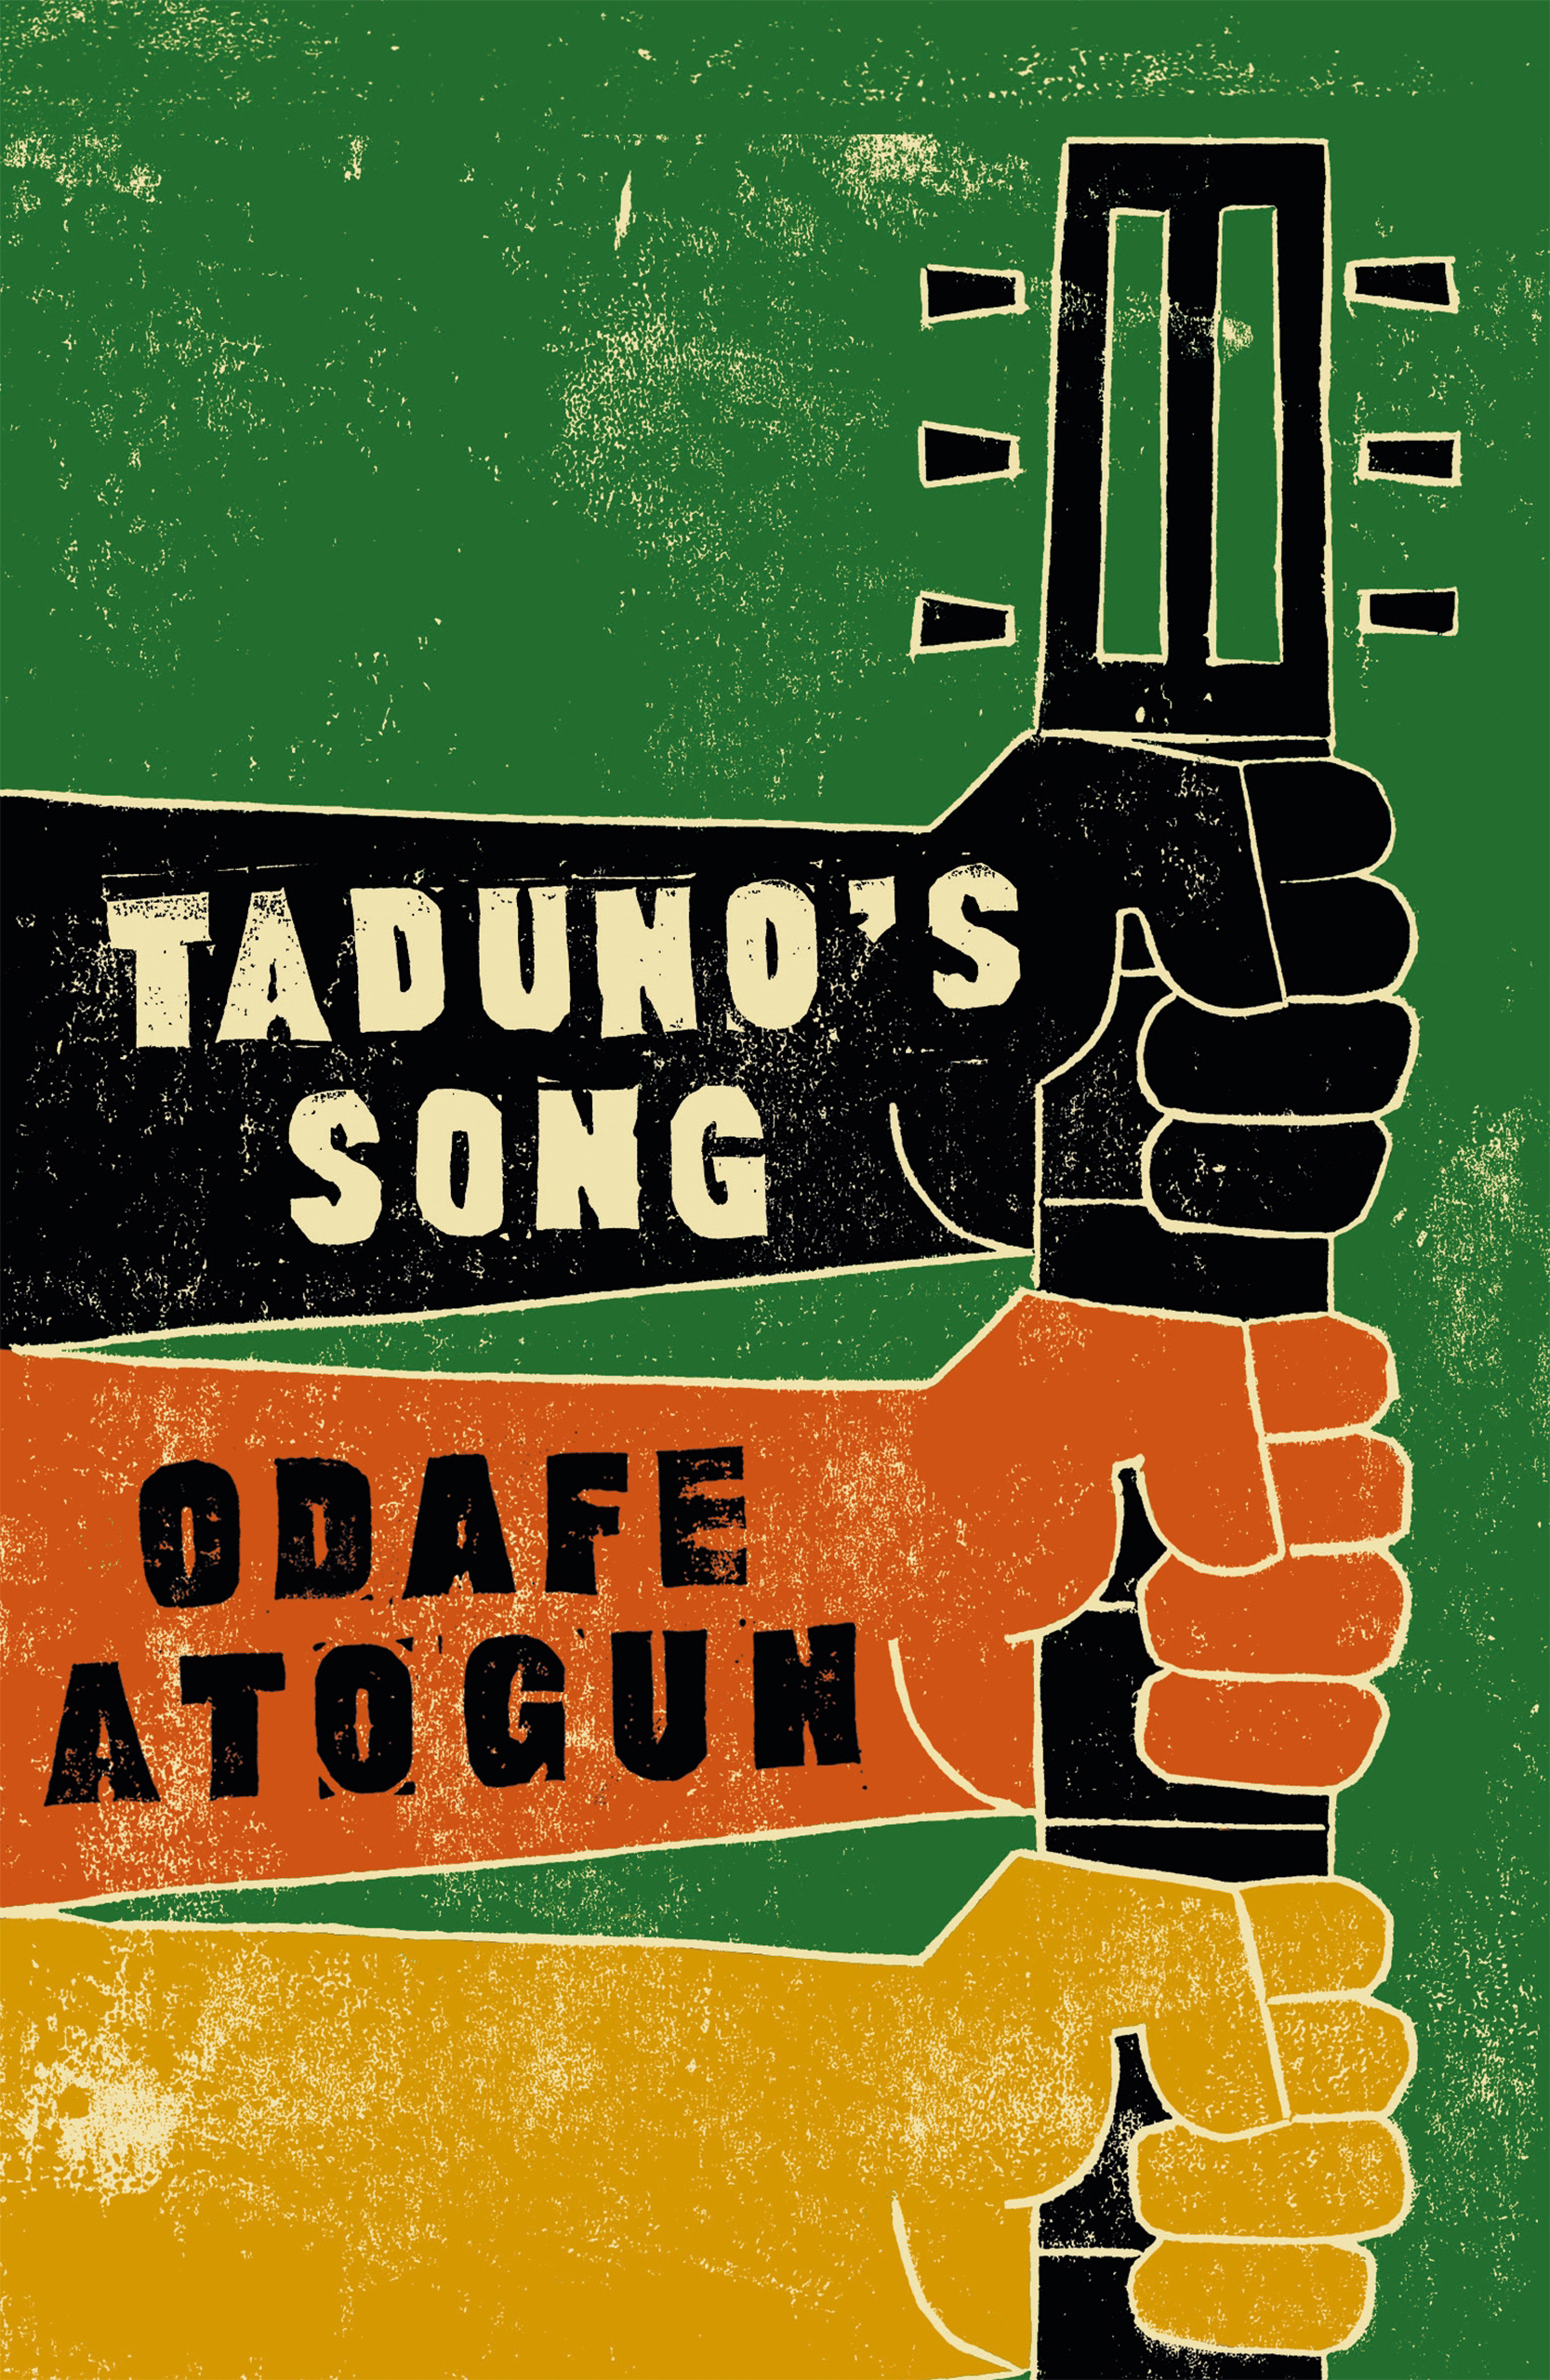 taduno's song odafe atogun